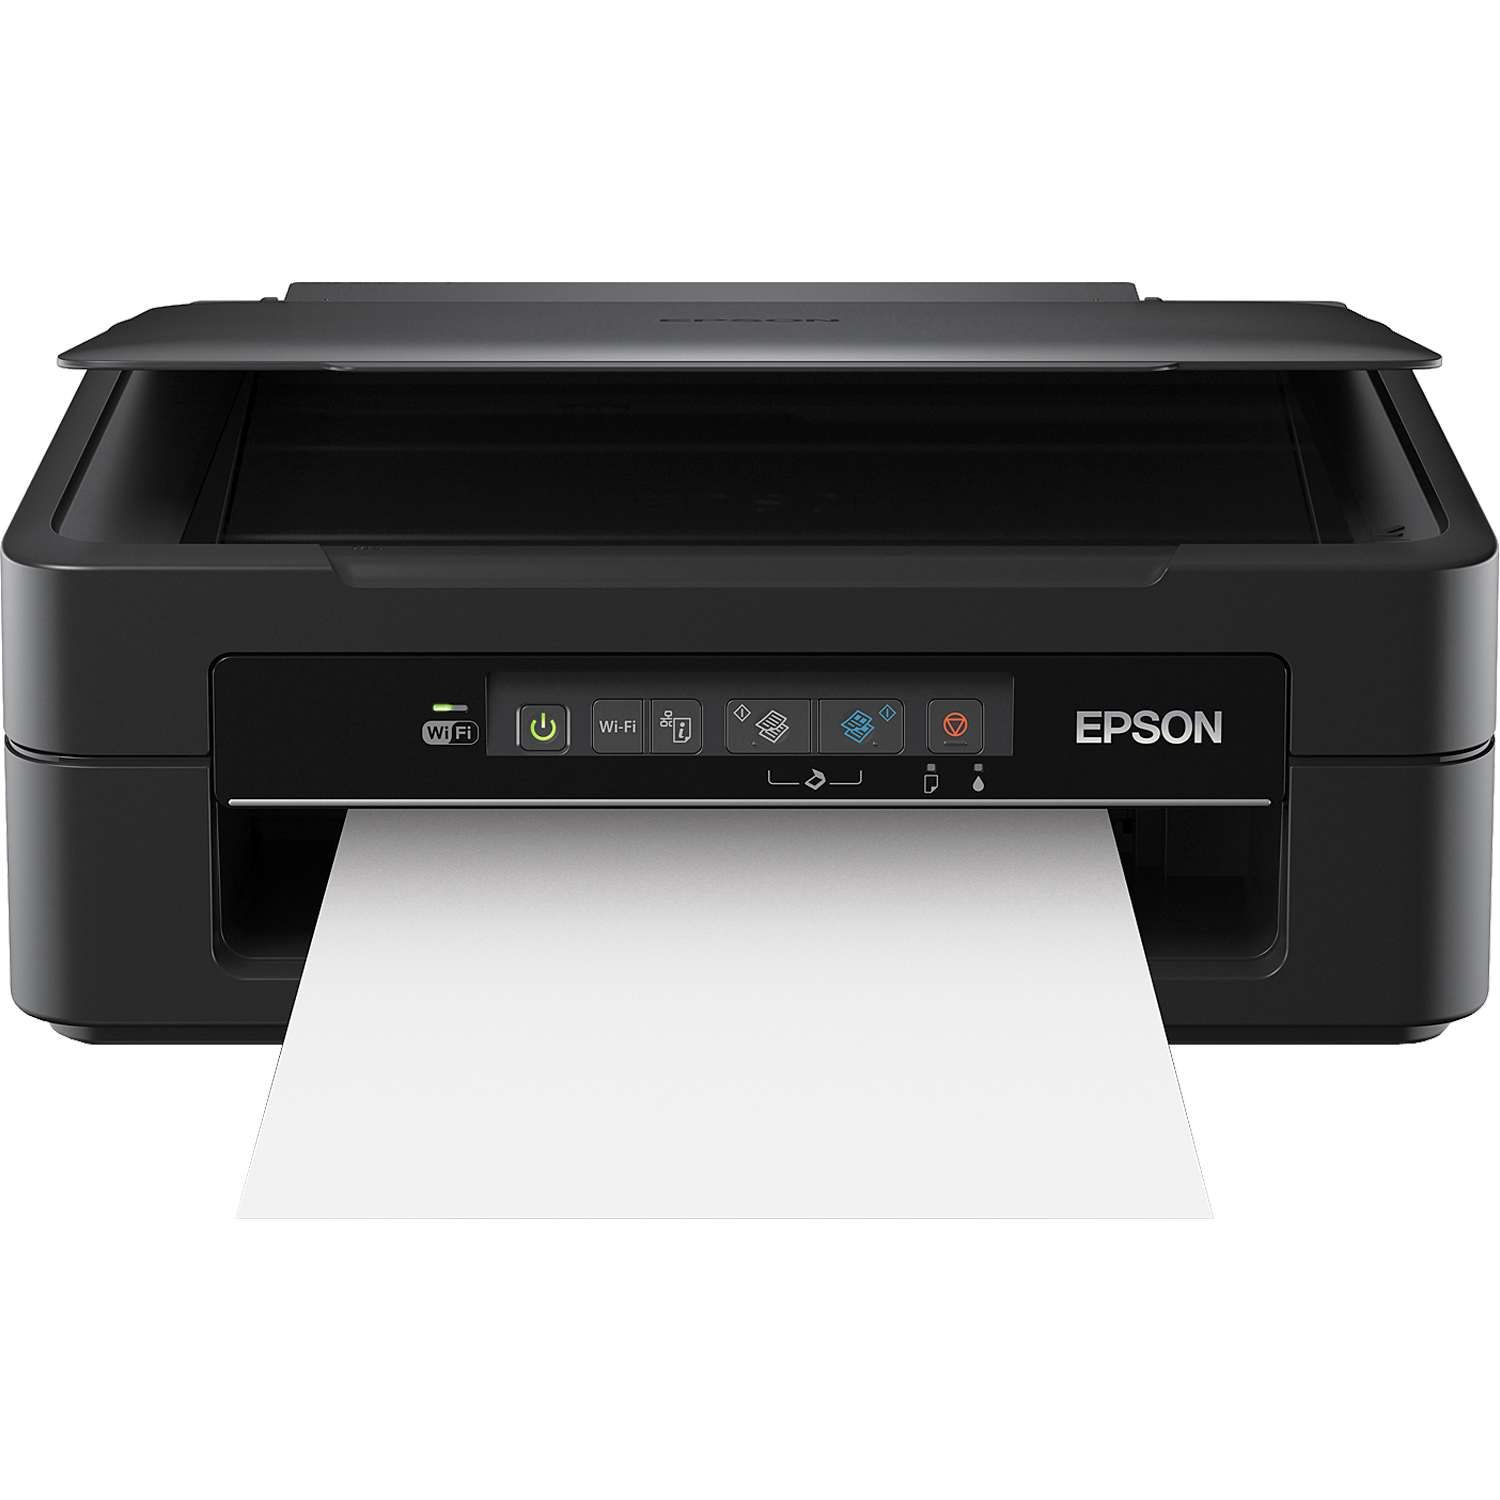 epson expression home xp 225 wireless printer scanner copier with epson connect ebay. Black Bedroom Furniture Sets. Home Design Ideas